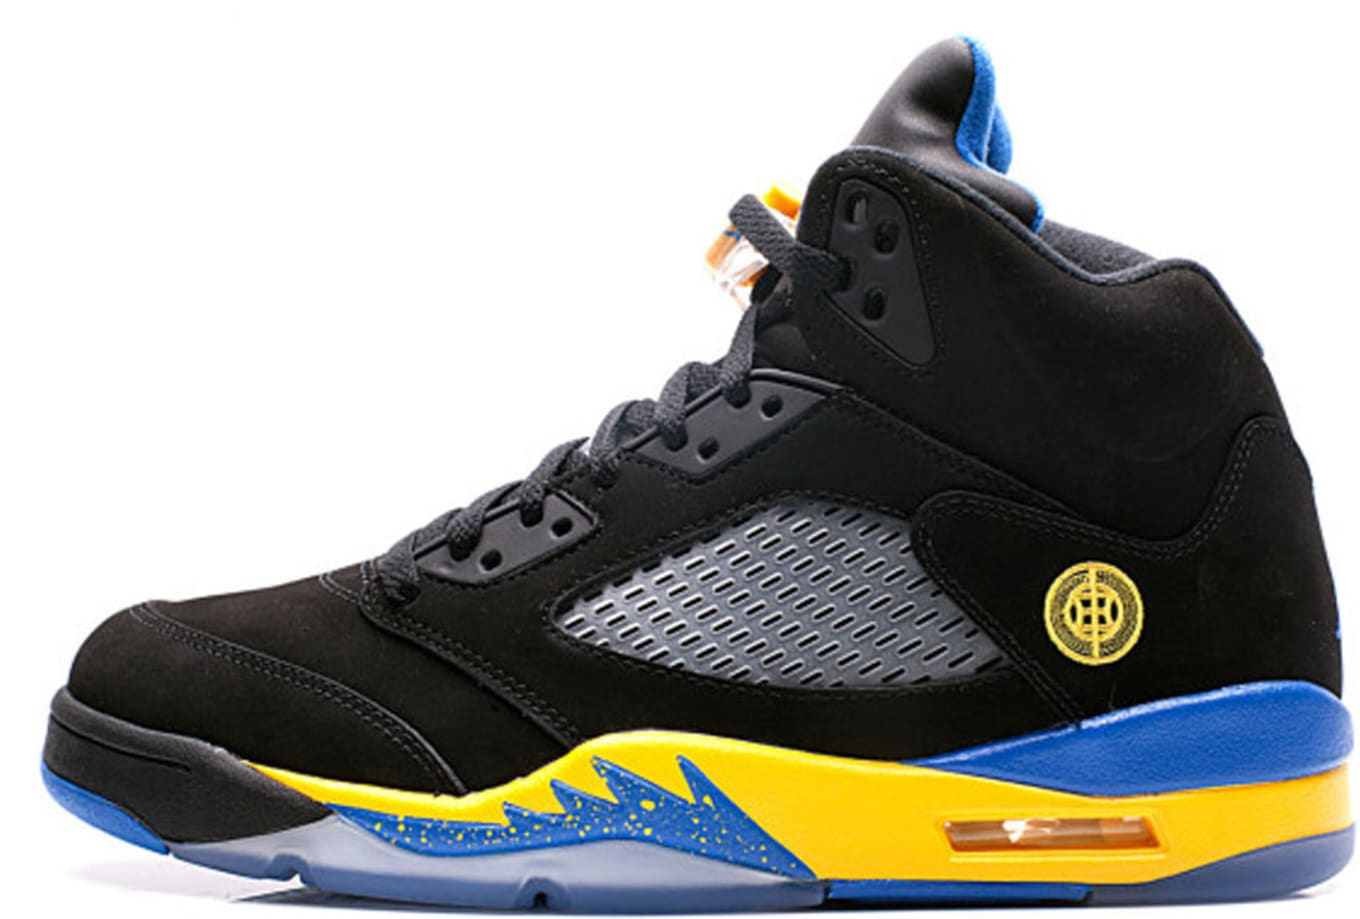 578f6211b8c Air Jordan 5 Price Guide | Sole Collector